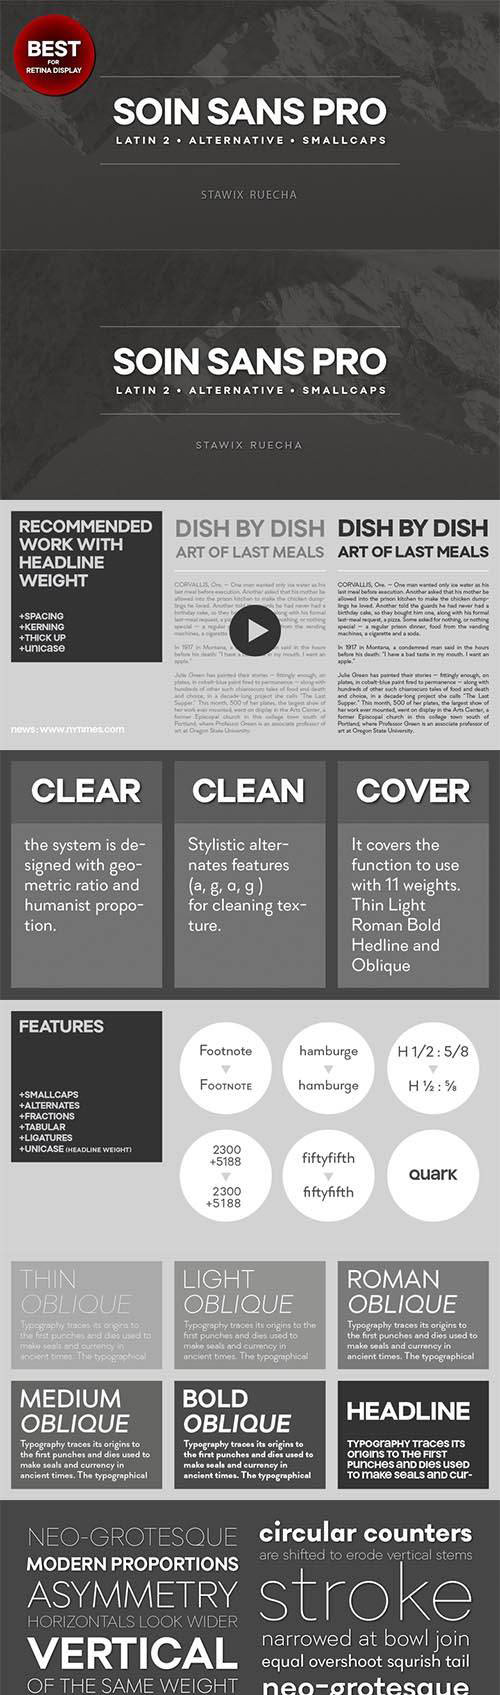 Soin Sans Font Family, Alternative SmallCaps